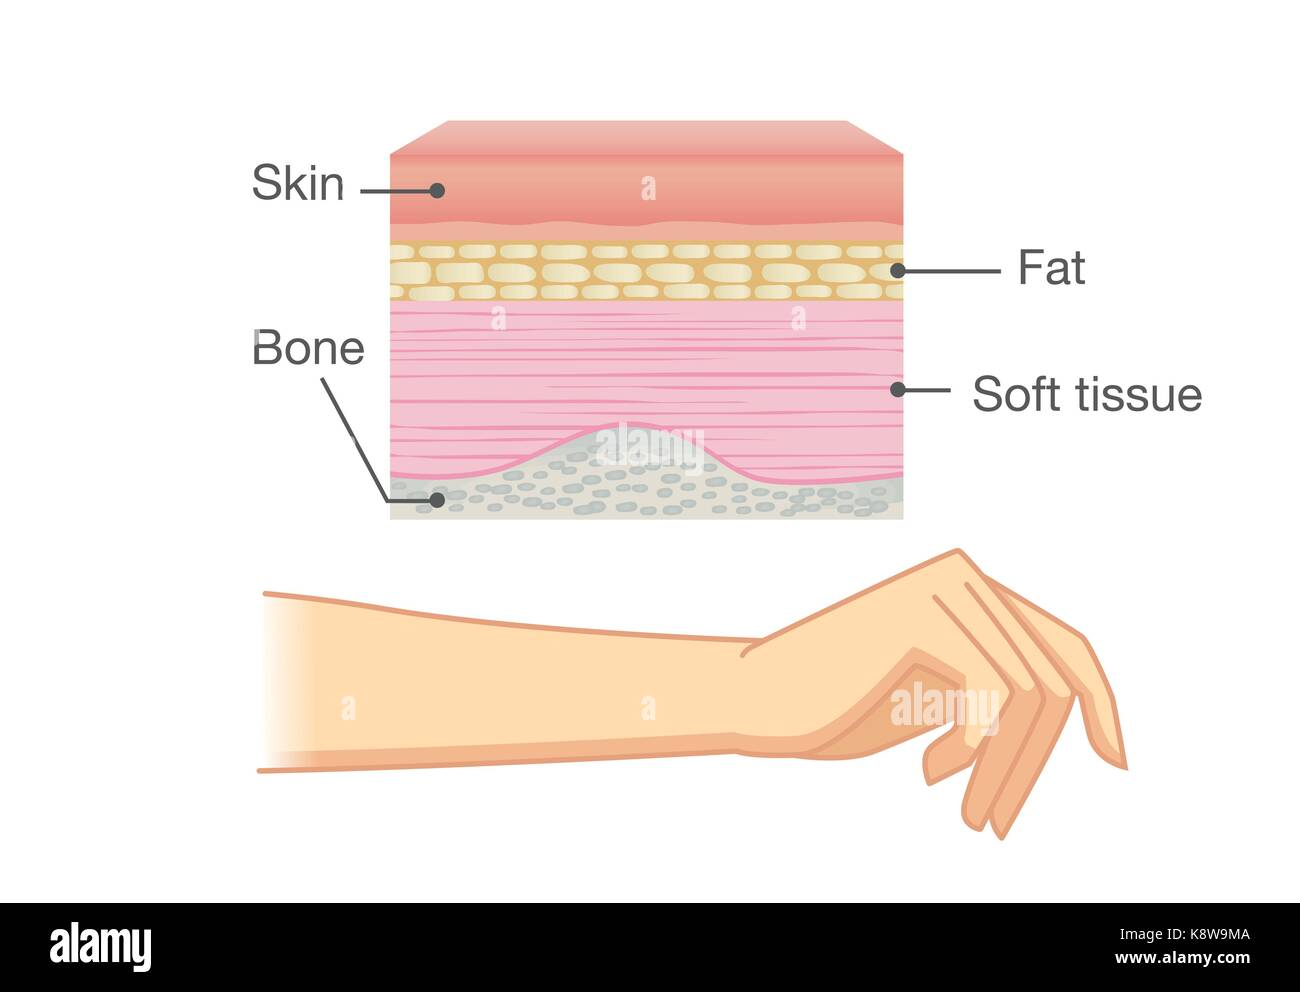 Anatomy Of Human Skin Layer And Arm Stock Vector Art